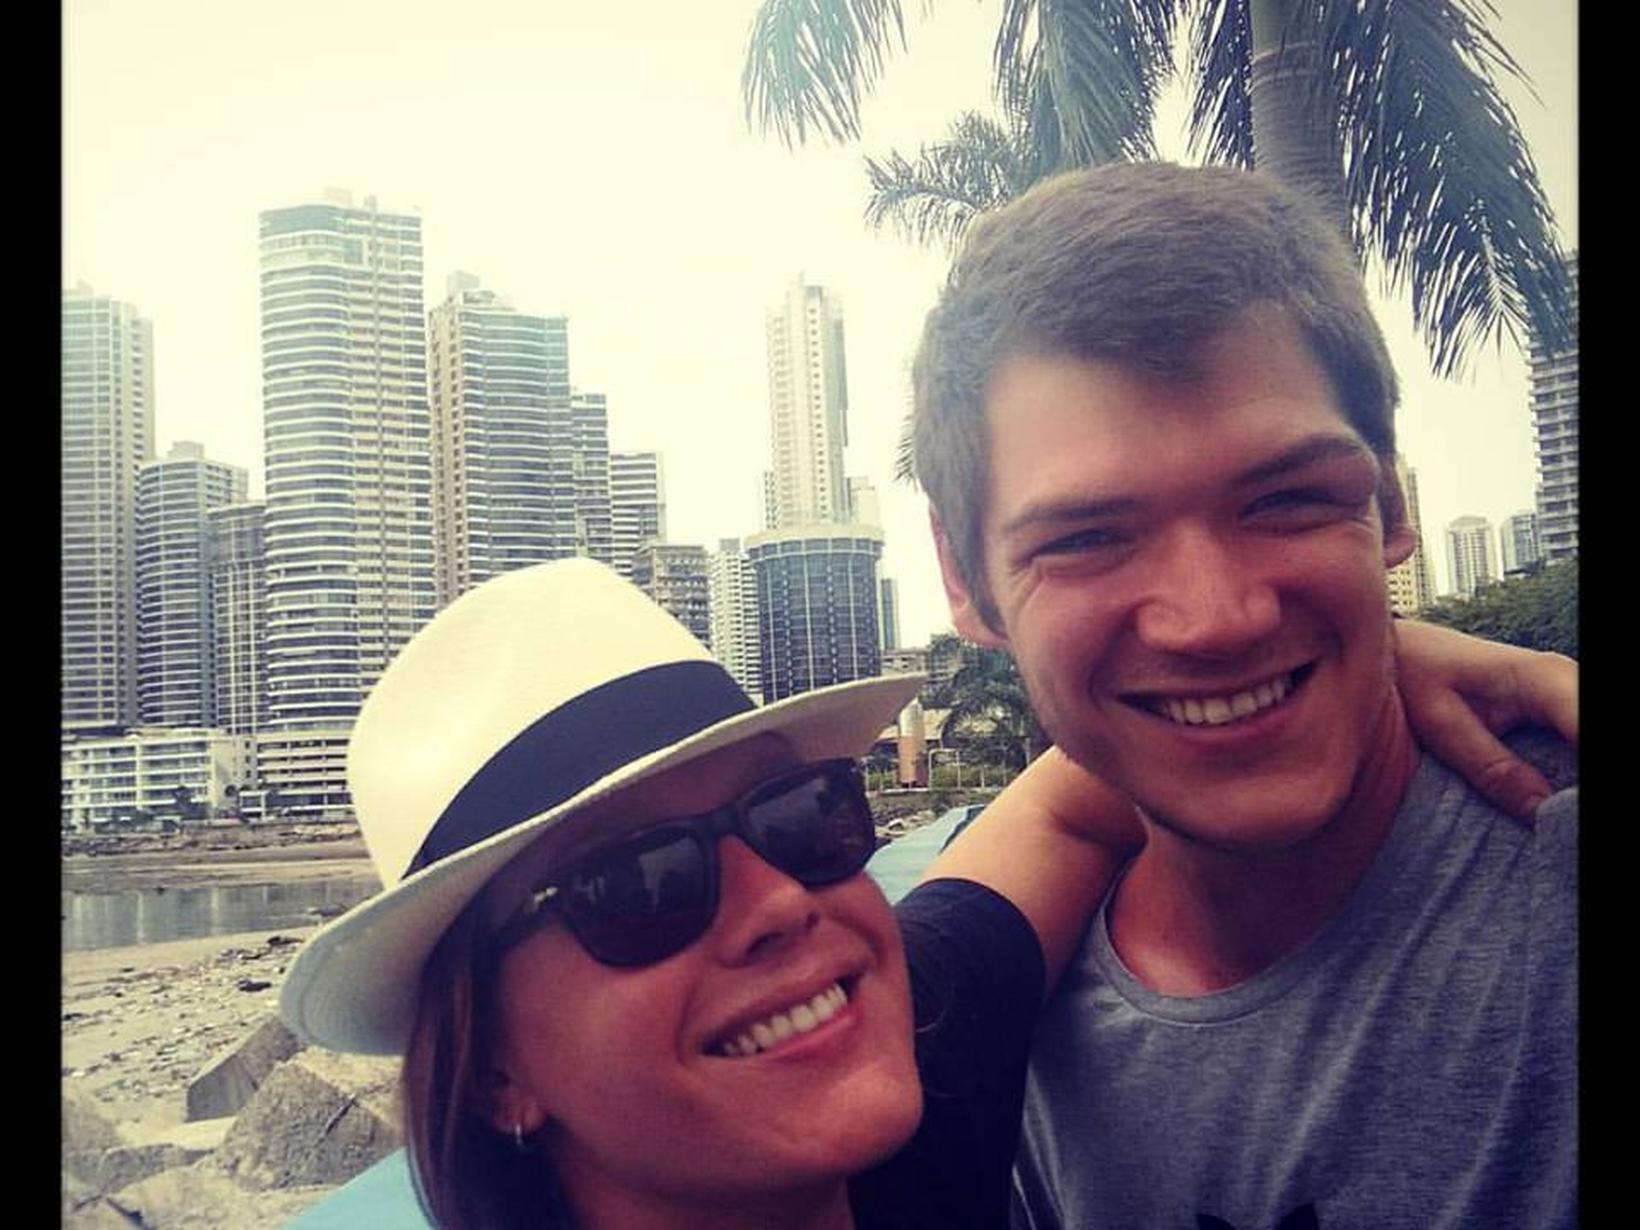 Heloïse & Quentin from Sydney, New South Wales, Australia